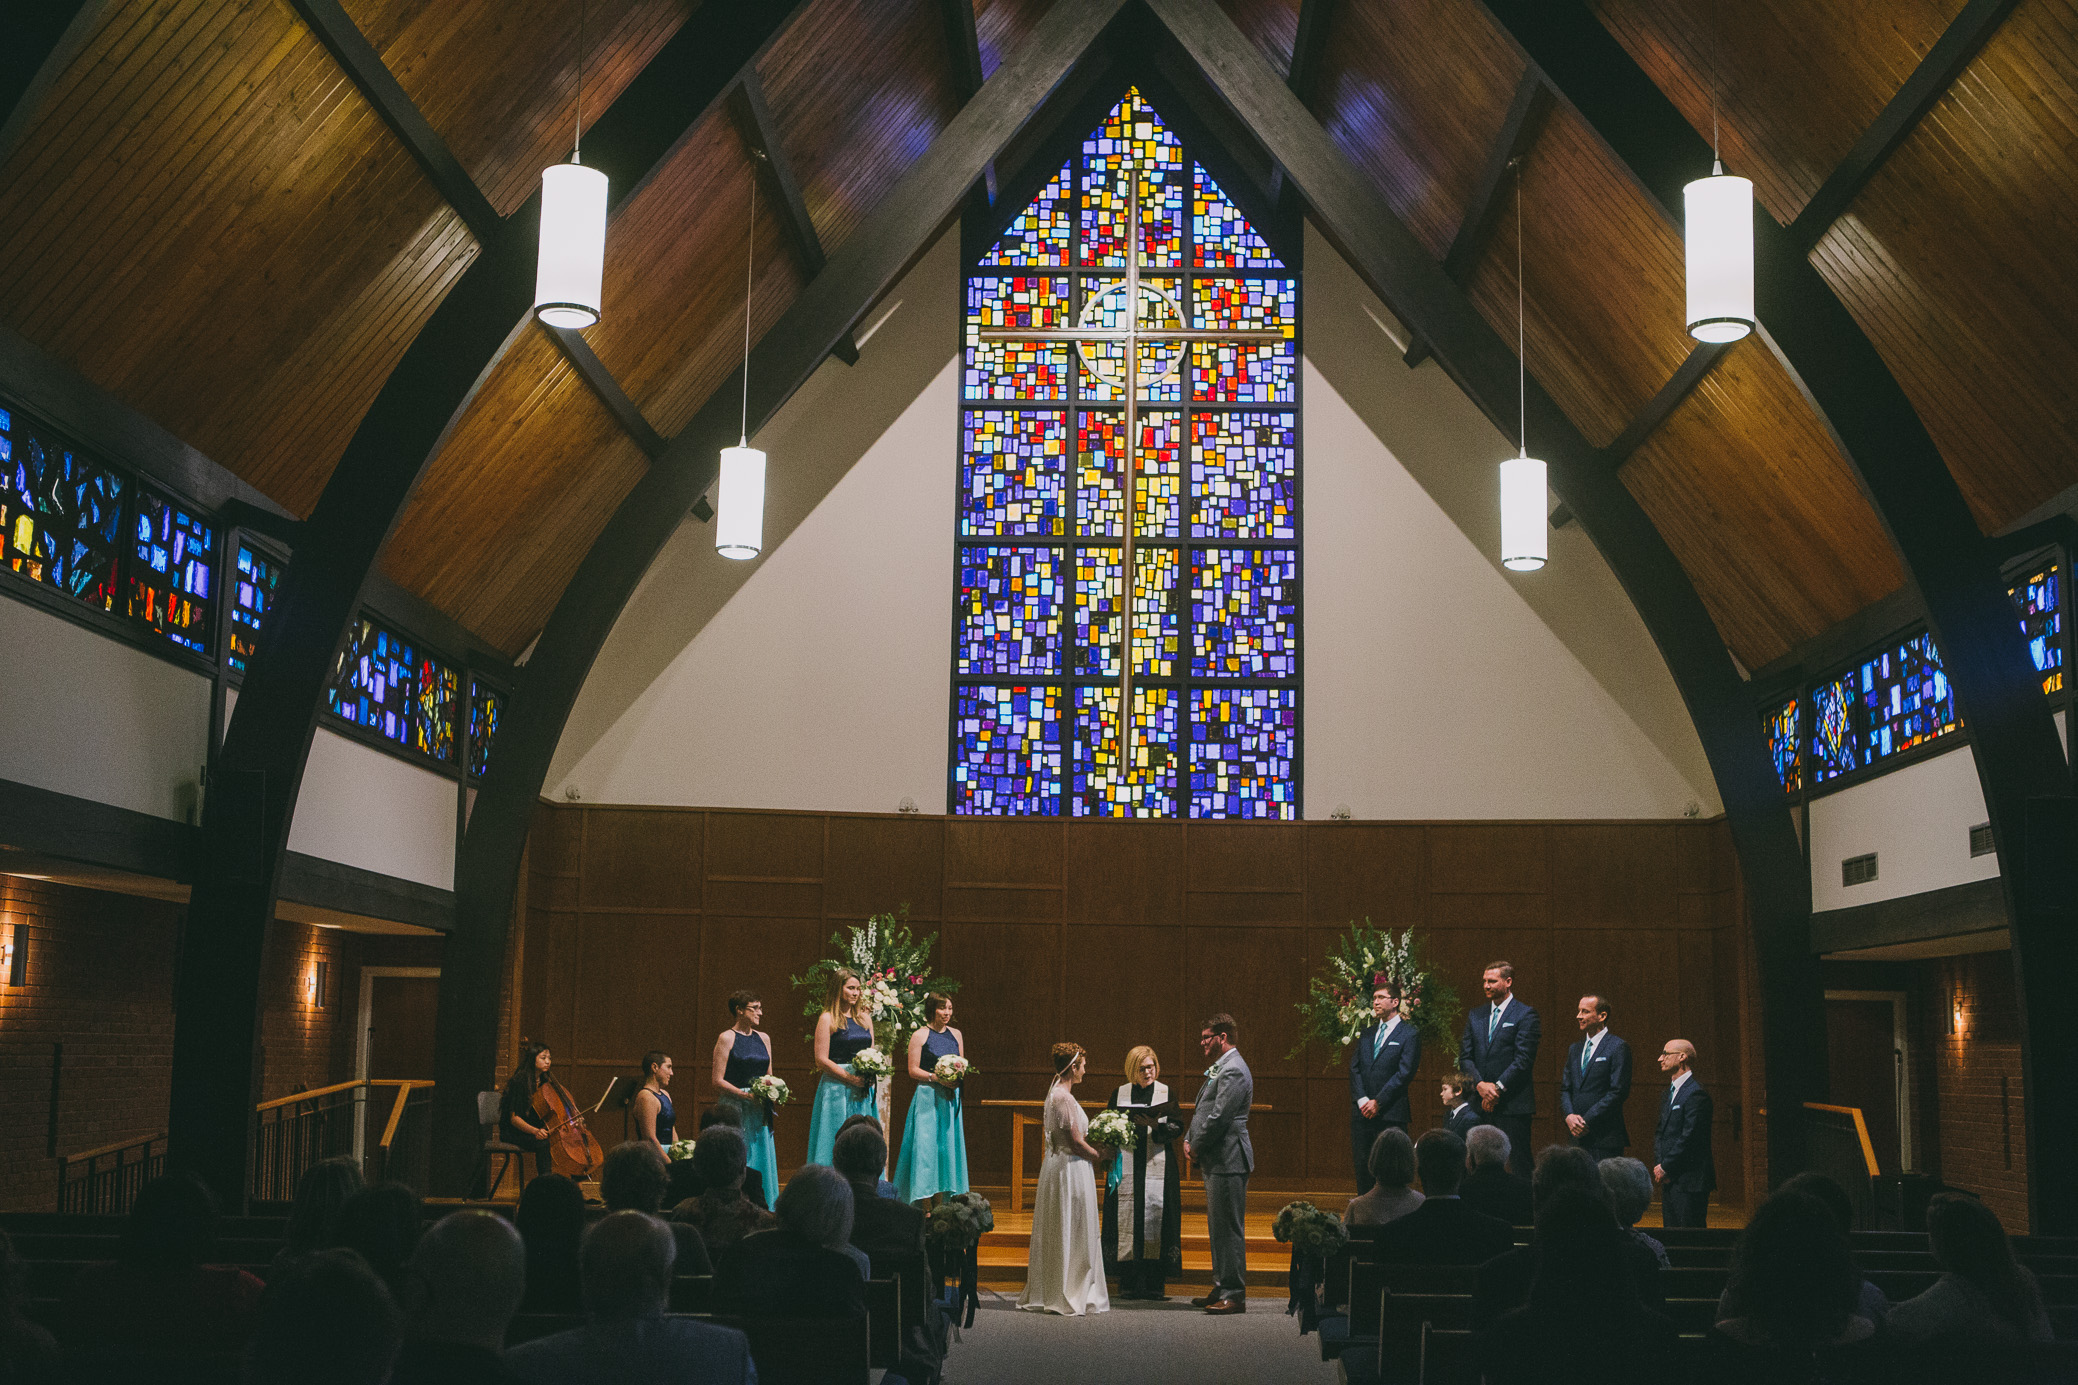 Wedding photography at Grace Presbyterian Church in Tuscaloosa, Alabama on March 10th, 2018 by David A. Smith of DSmithImages Wedding Photography, Portraits, and Events in the Birmingham, Alabama area.